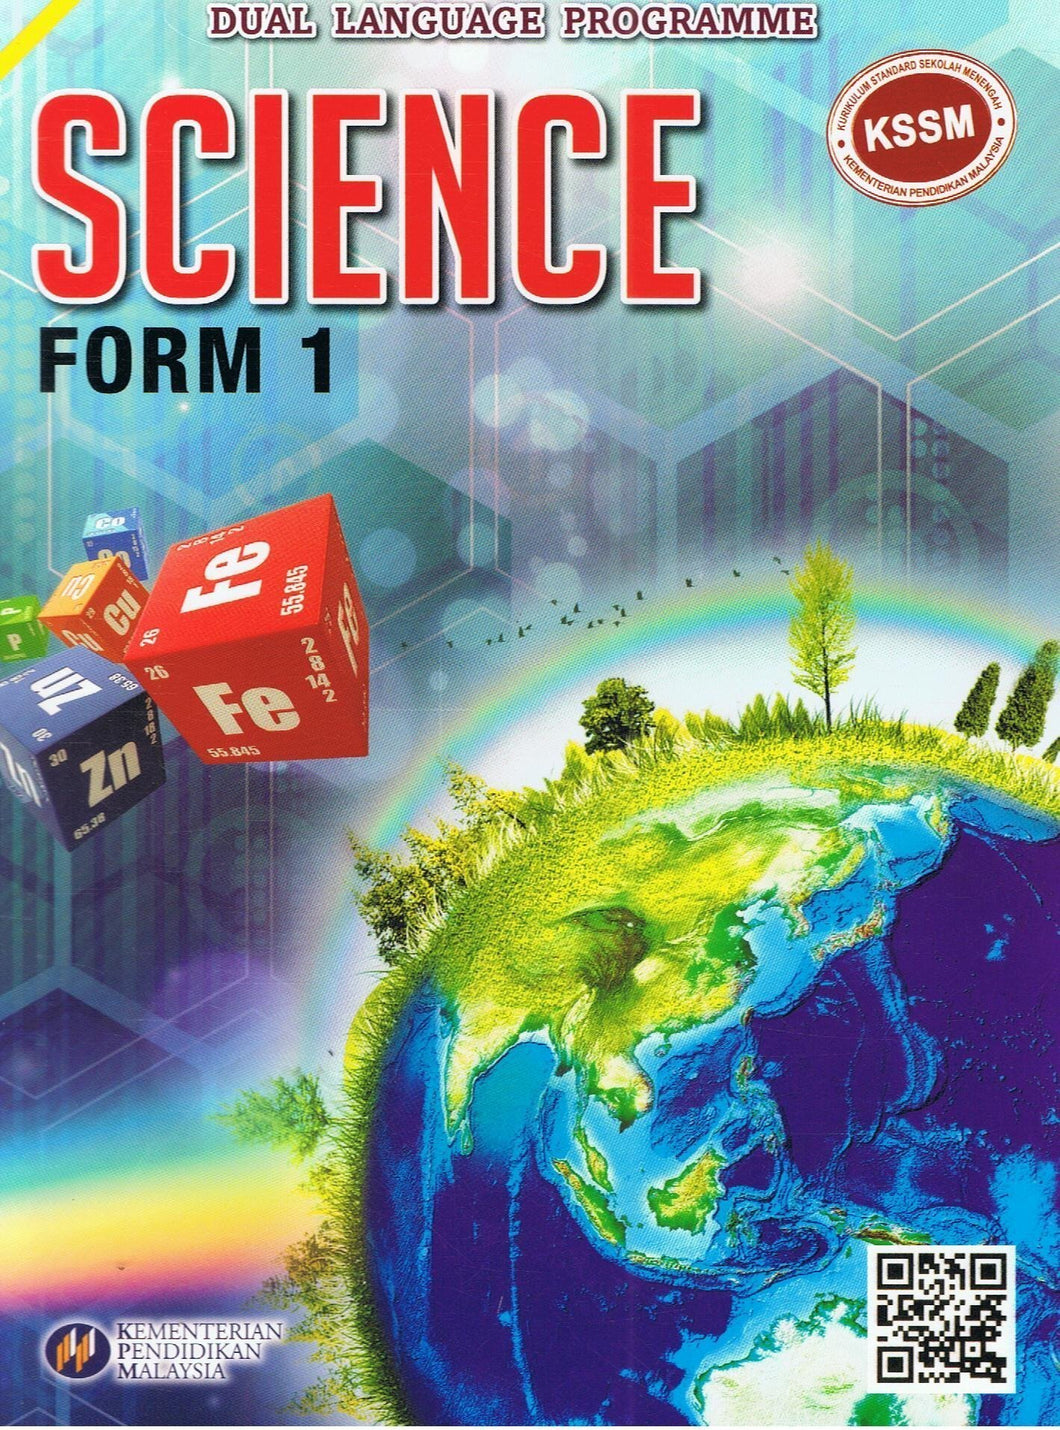 Karangkraf: Buku Teks Science Form 1 DLP Textbook